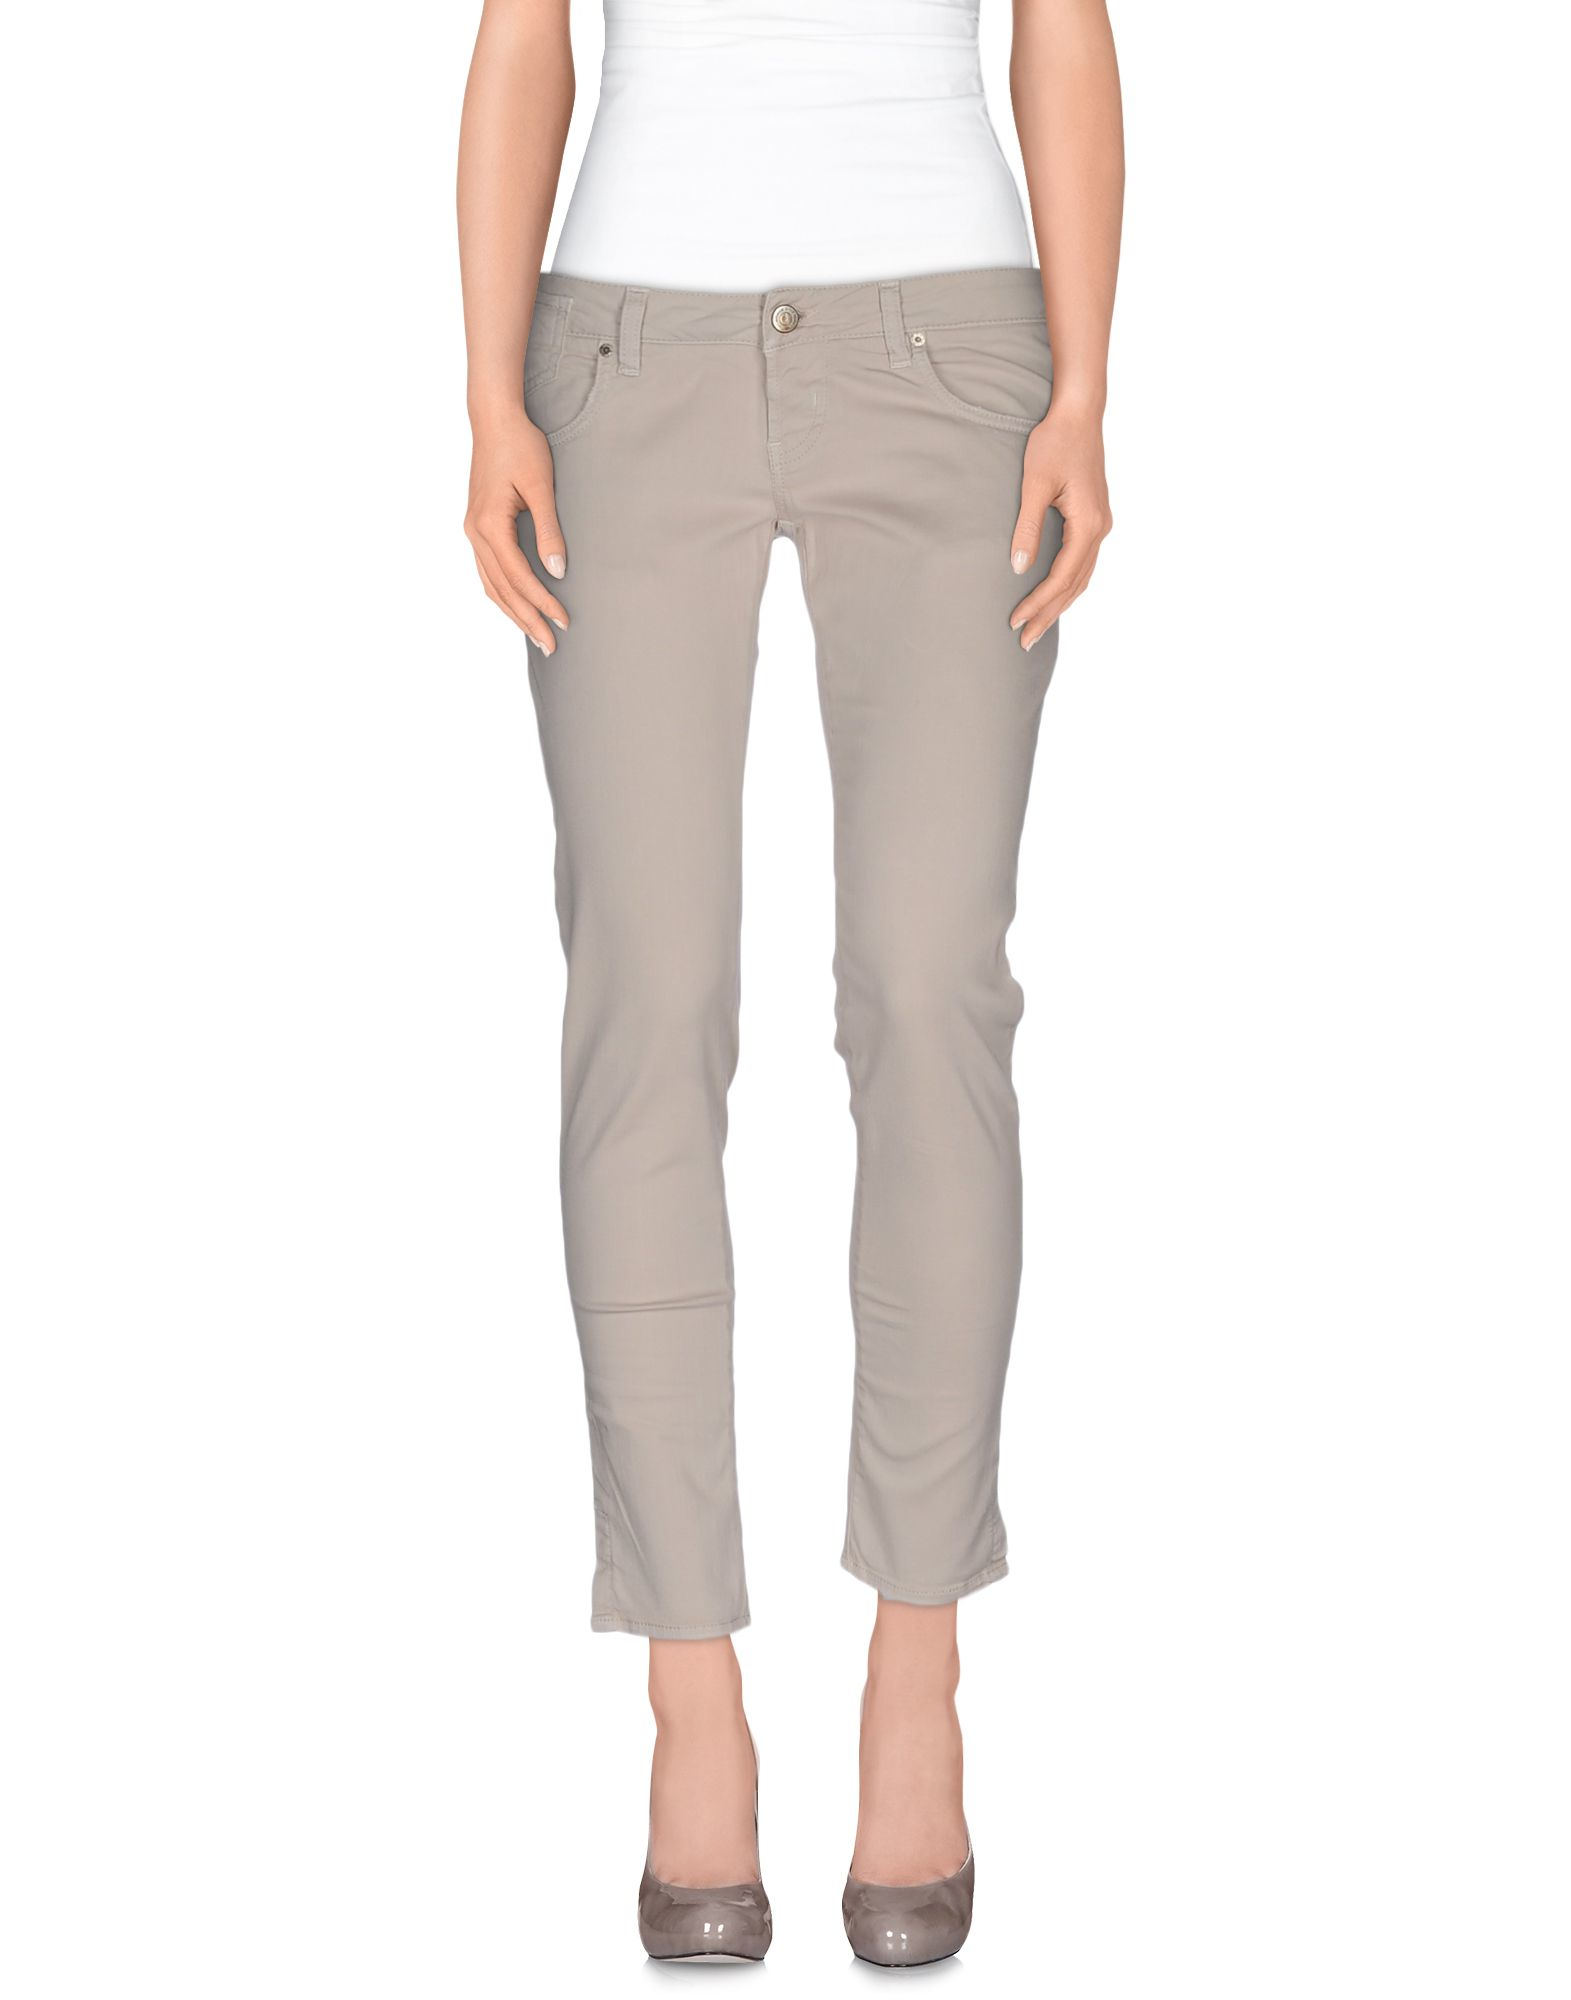 Luxury  Like Not All Retailers Agree With Me  It Was A Bit Of A Struggle To Find Any Gray Pants Let Alone Light Gray Ones, Even At Some Of The Usual Suspects For Womens Workwear Readers, What Do You Think  Do You Agree With Me That A Very